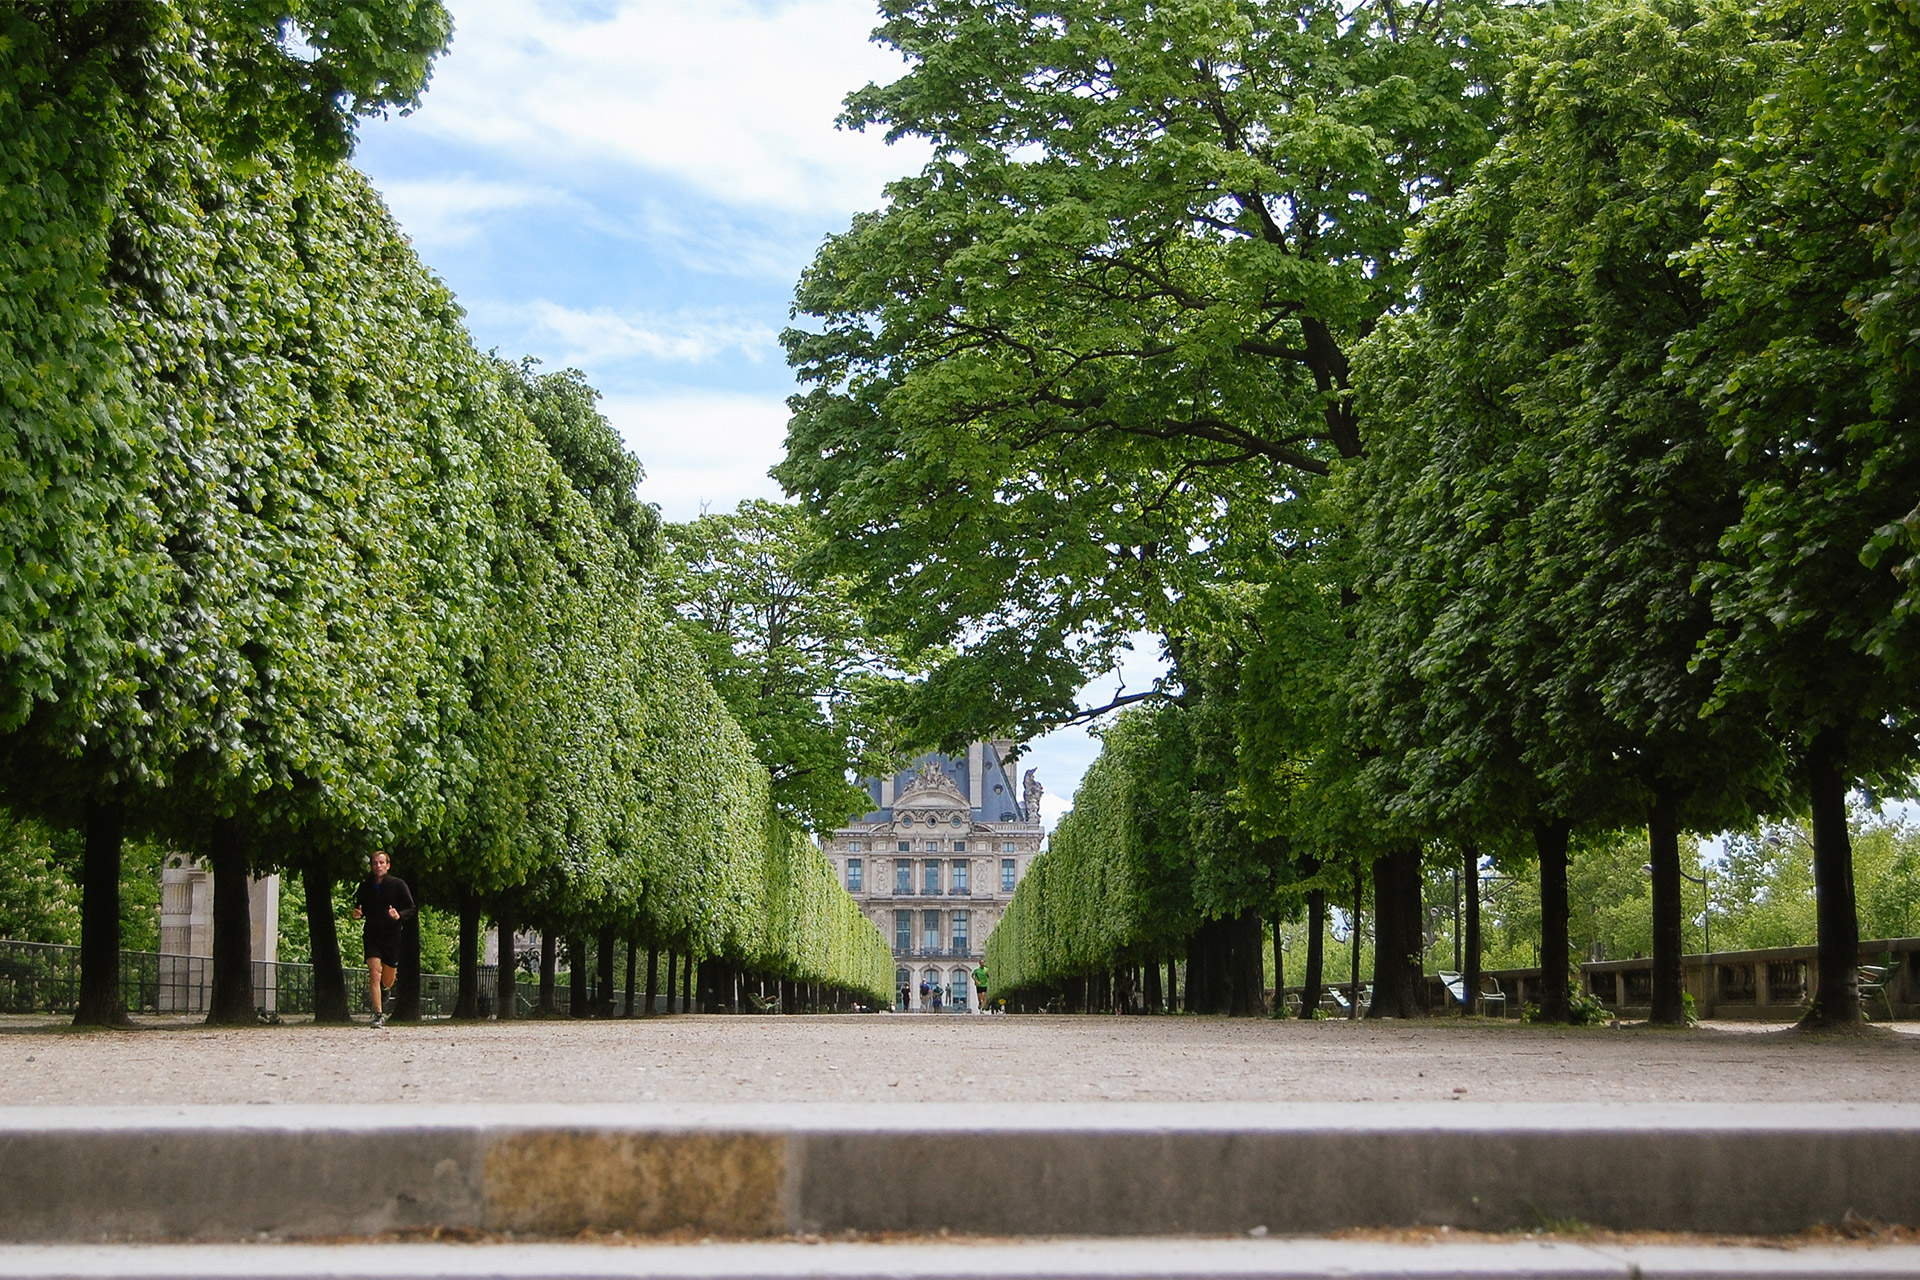 Walk through the Tuileries to to Louvre Museum nearby